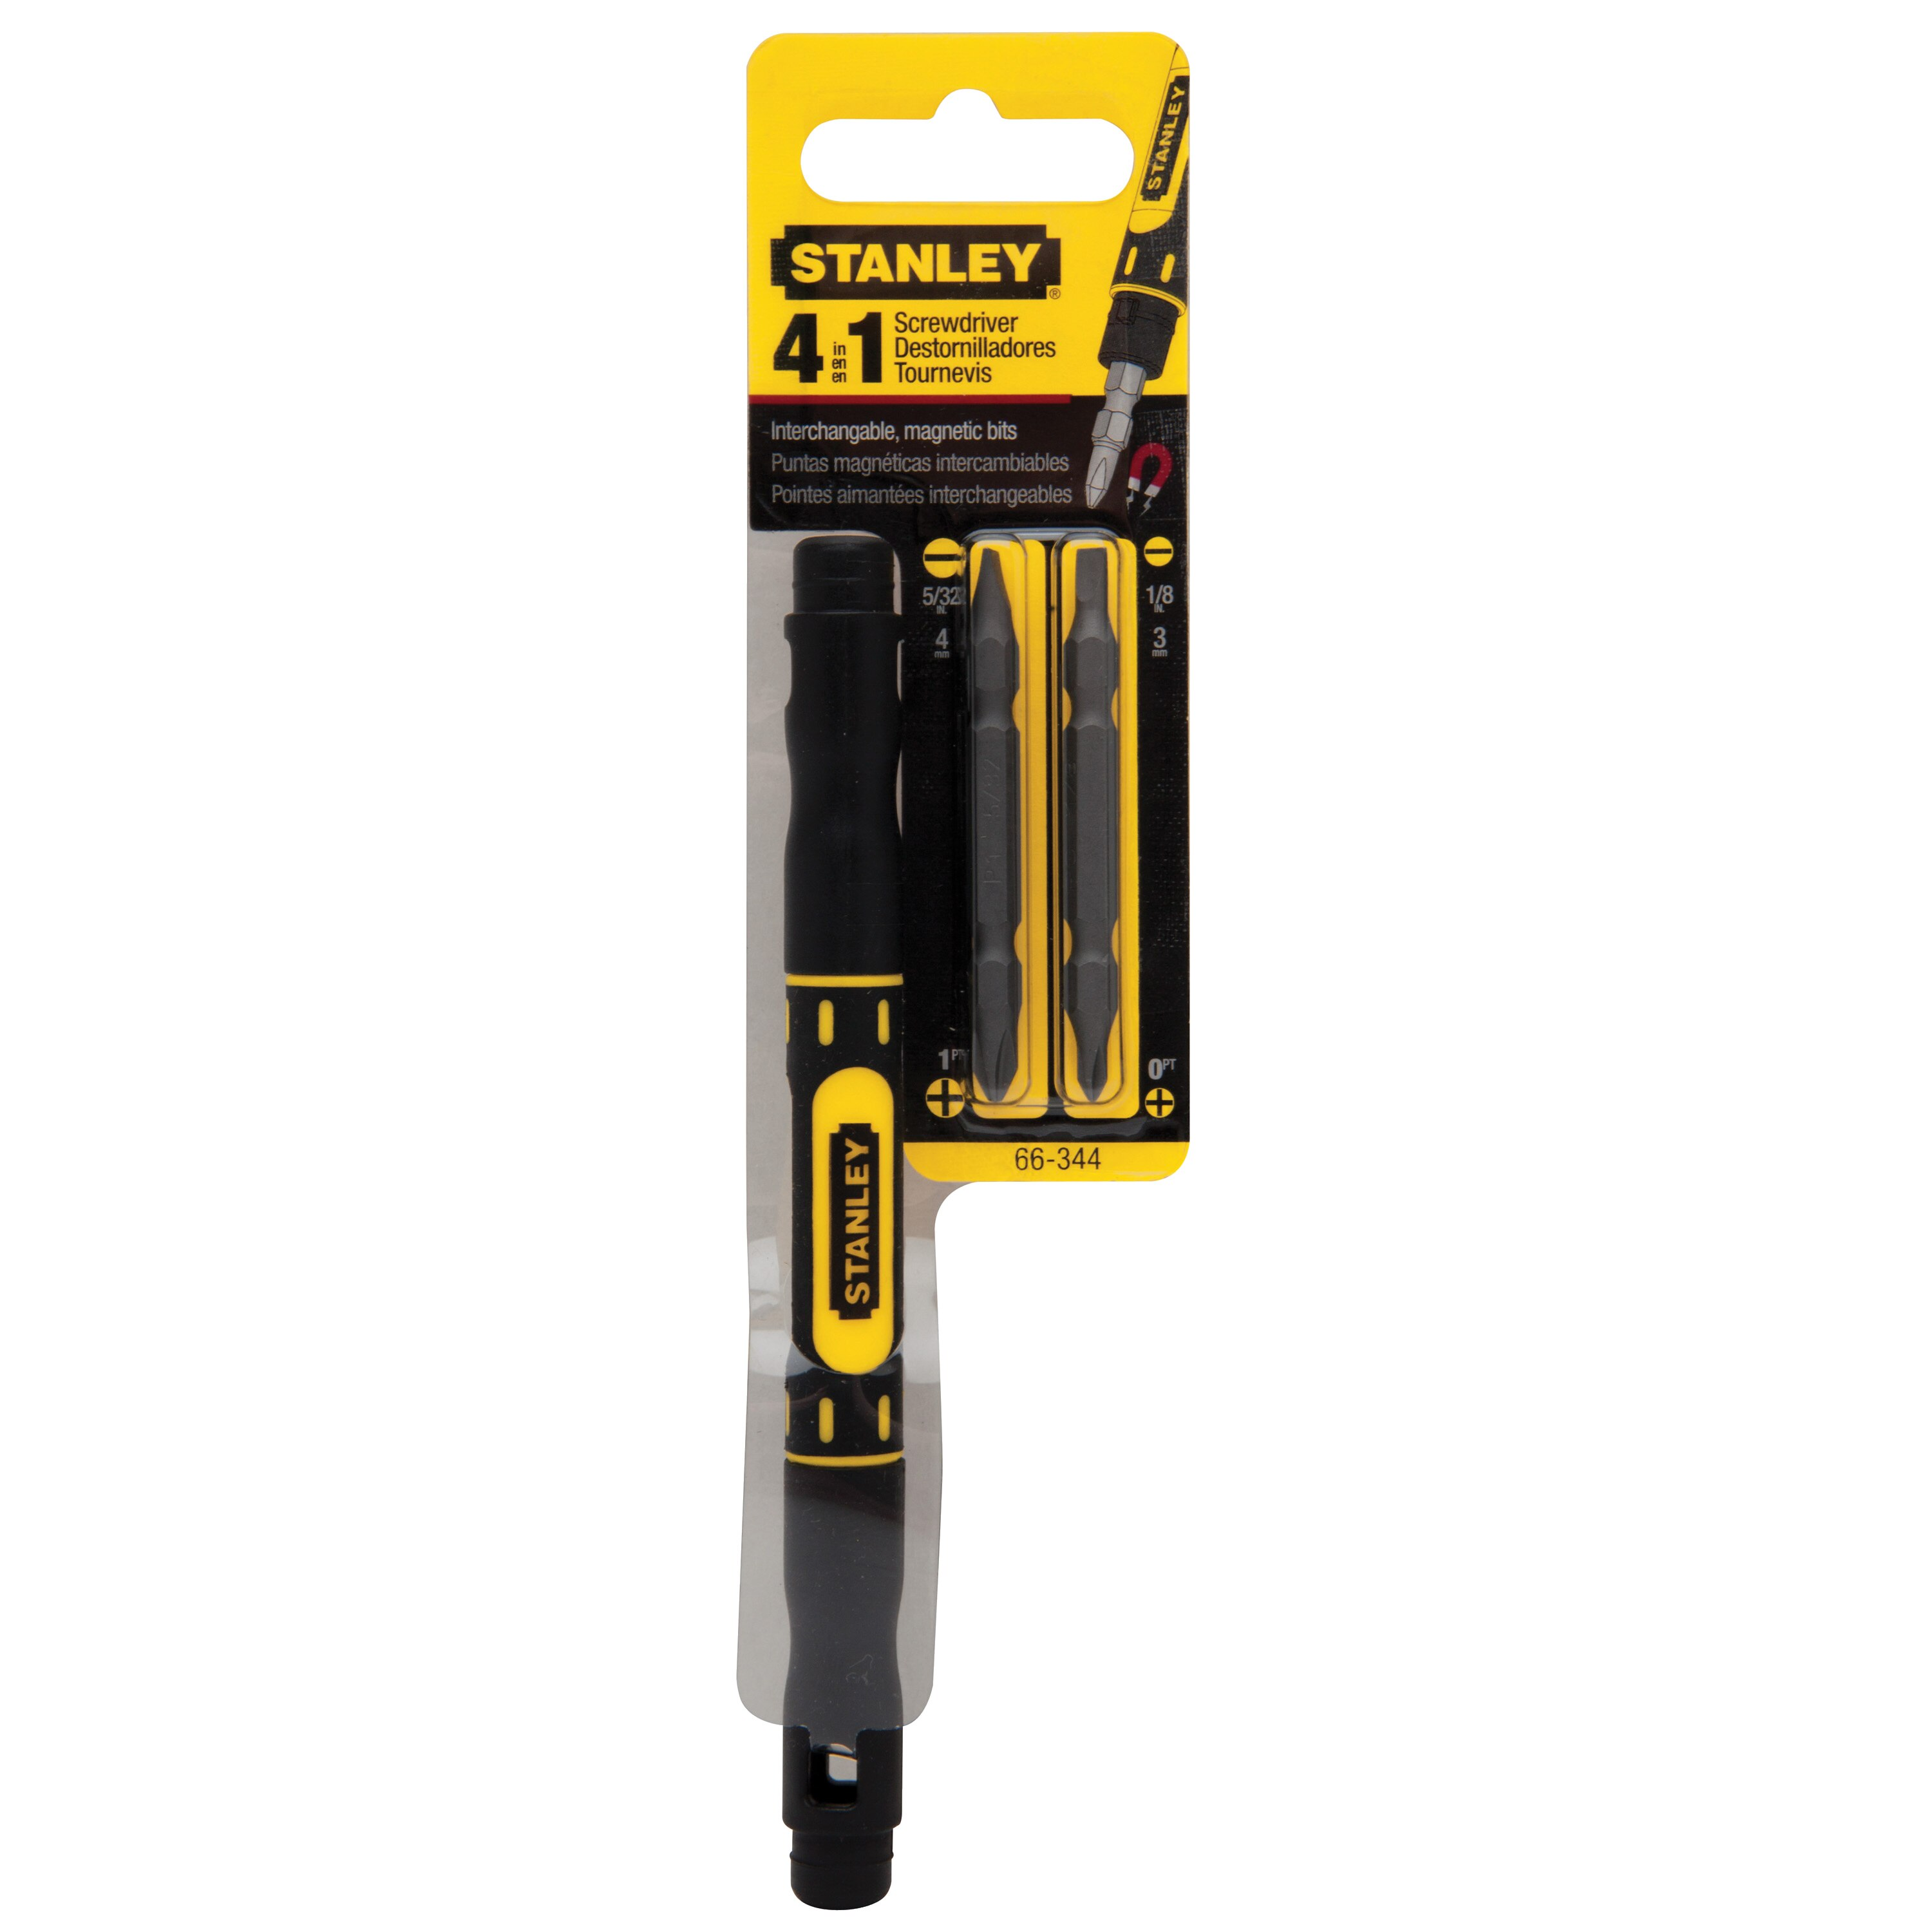 Stanley Tools - 4in1 BiMaterial Pocket Driver - 66-344